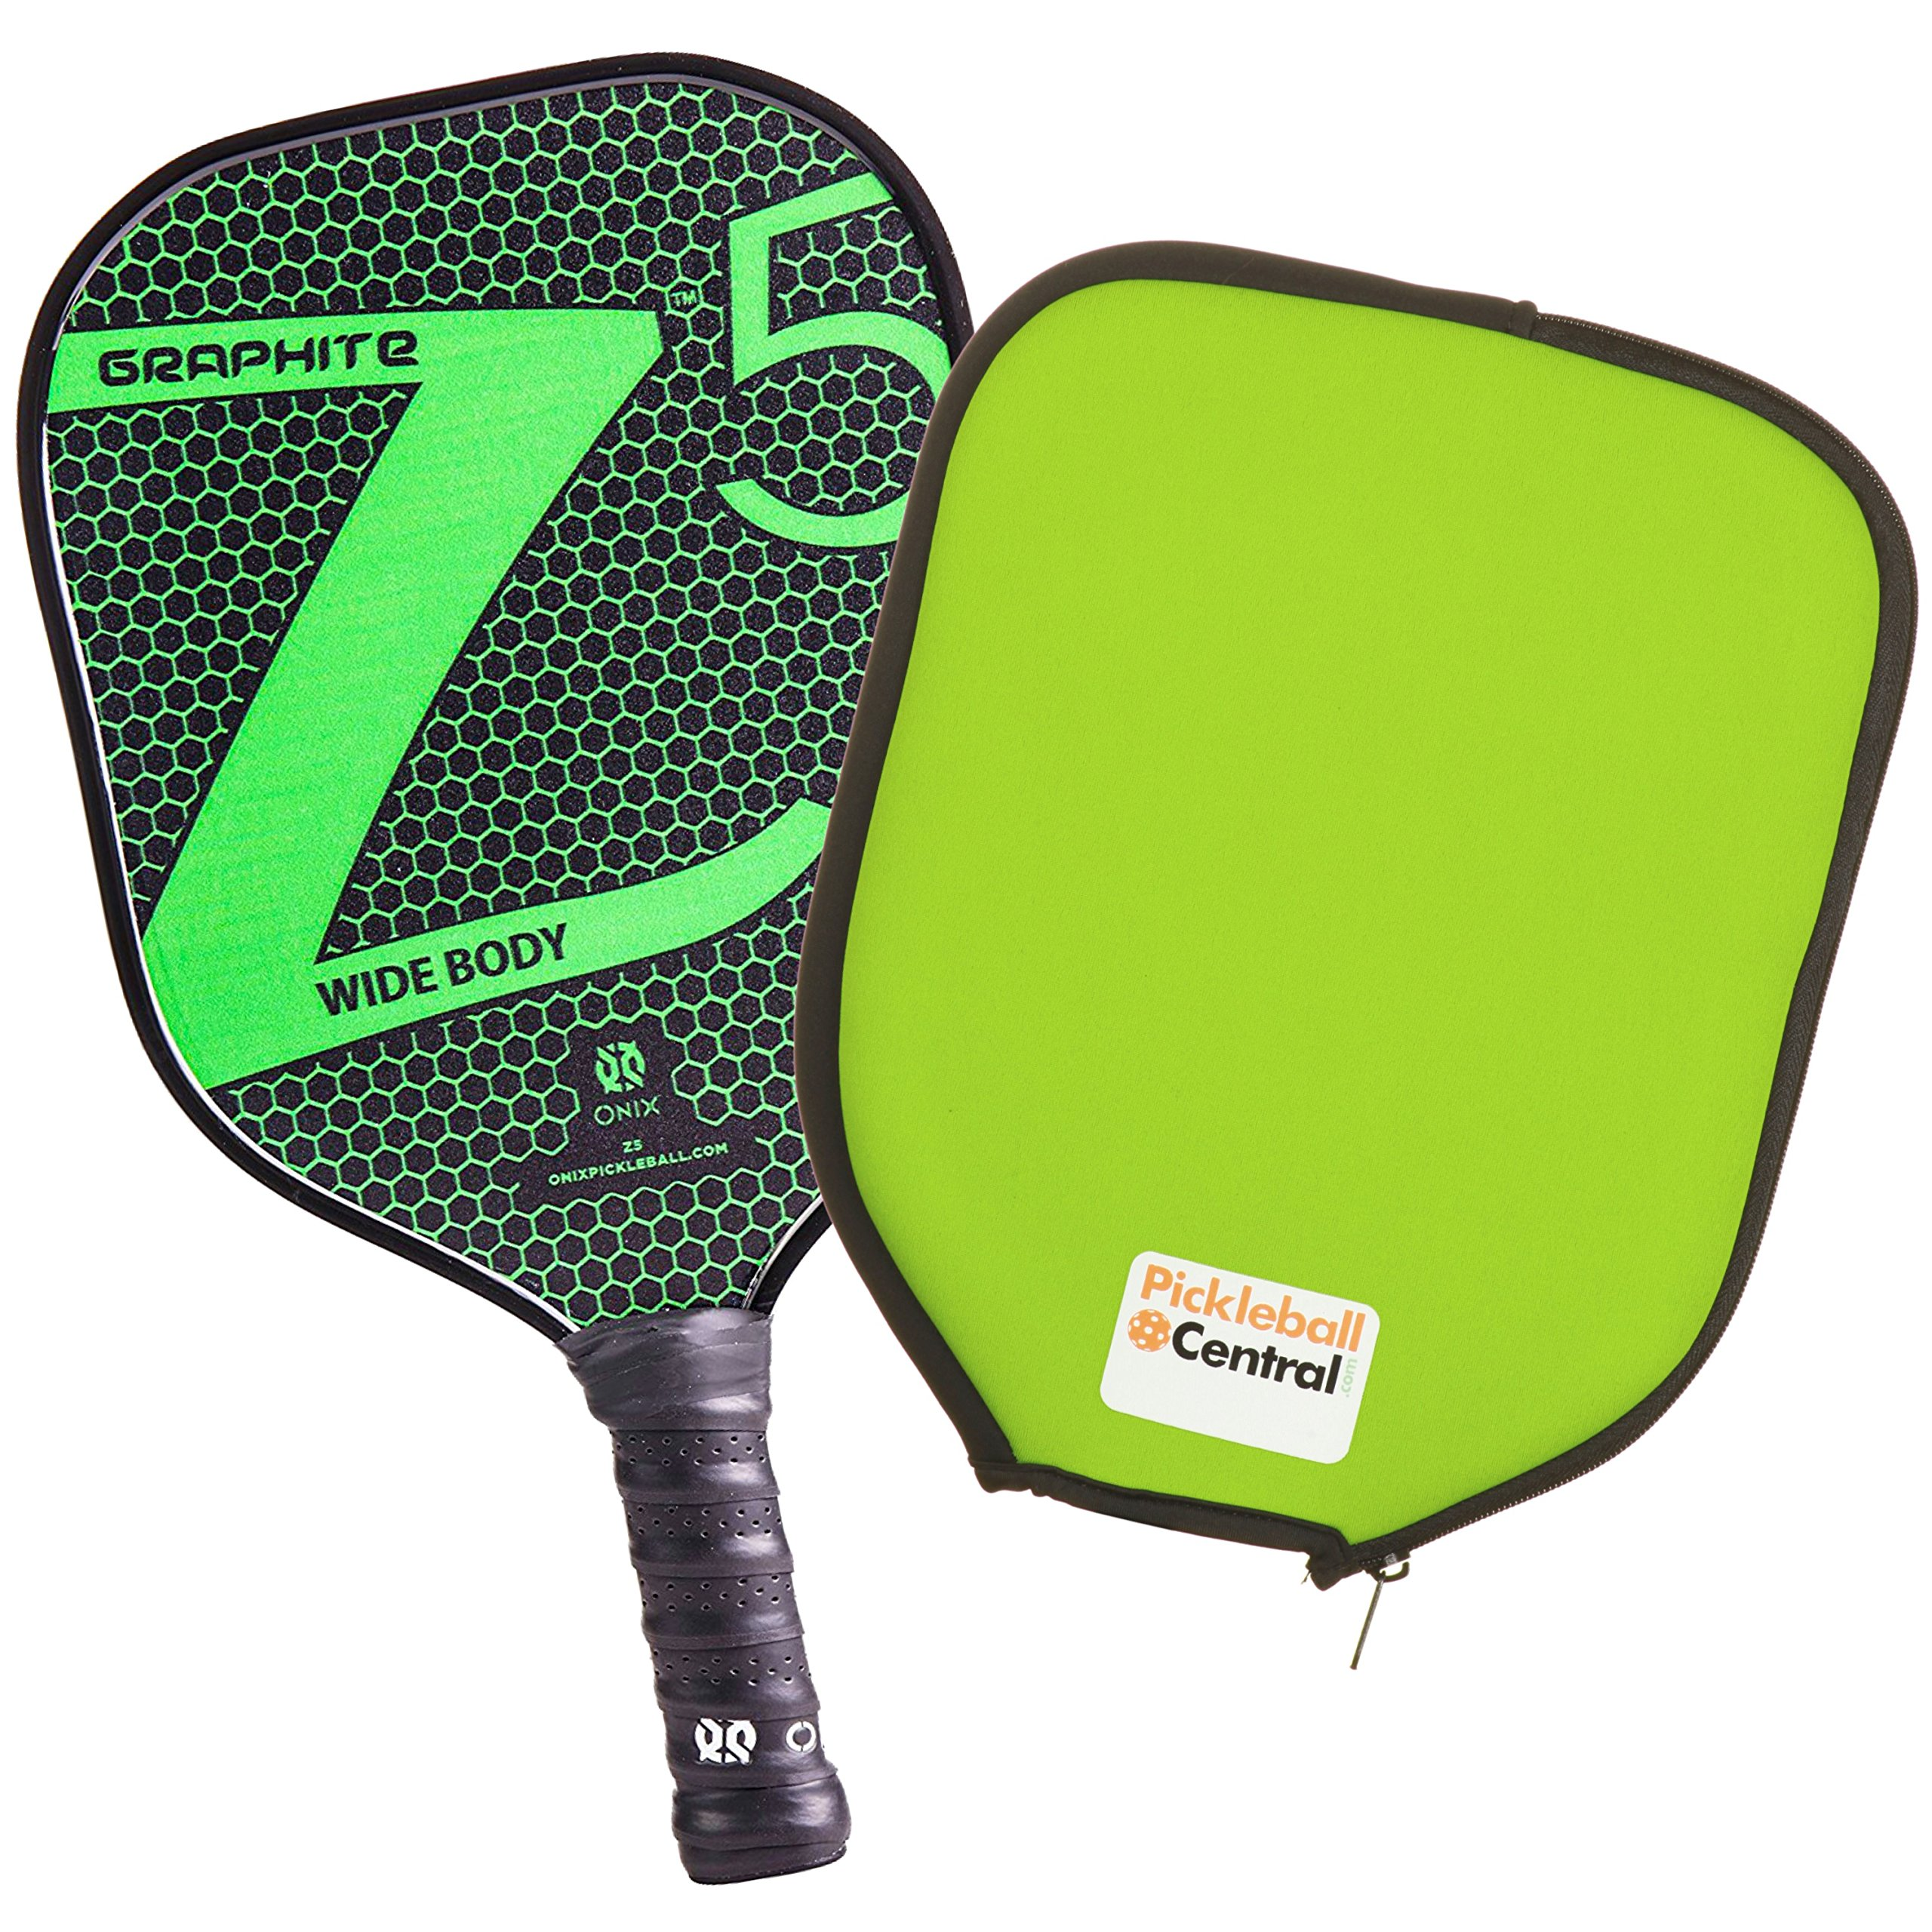 Onix Z5 Graphite Pickleball Paddle and Paddle Cover (Green) by Onix